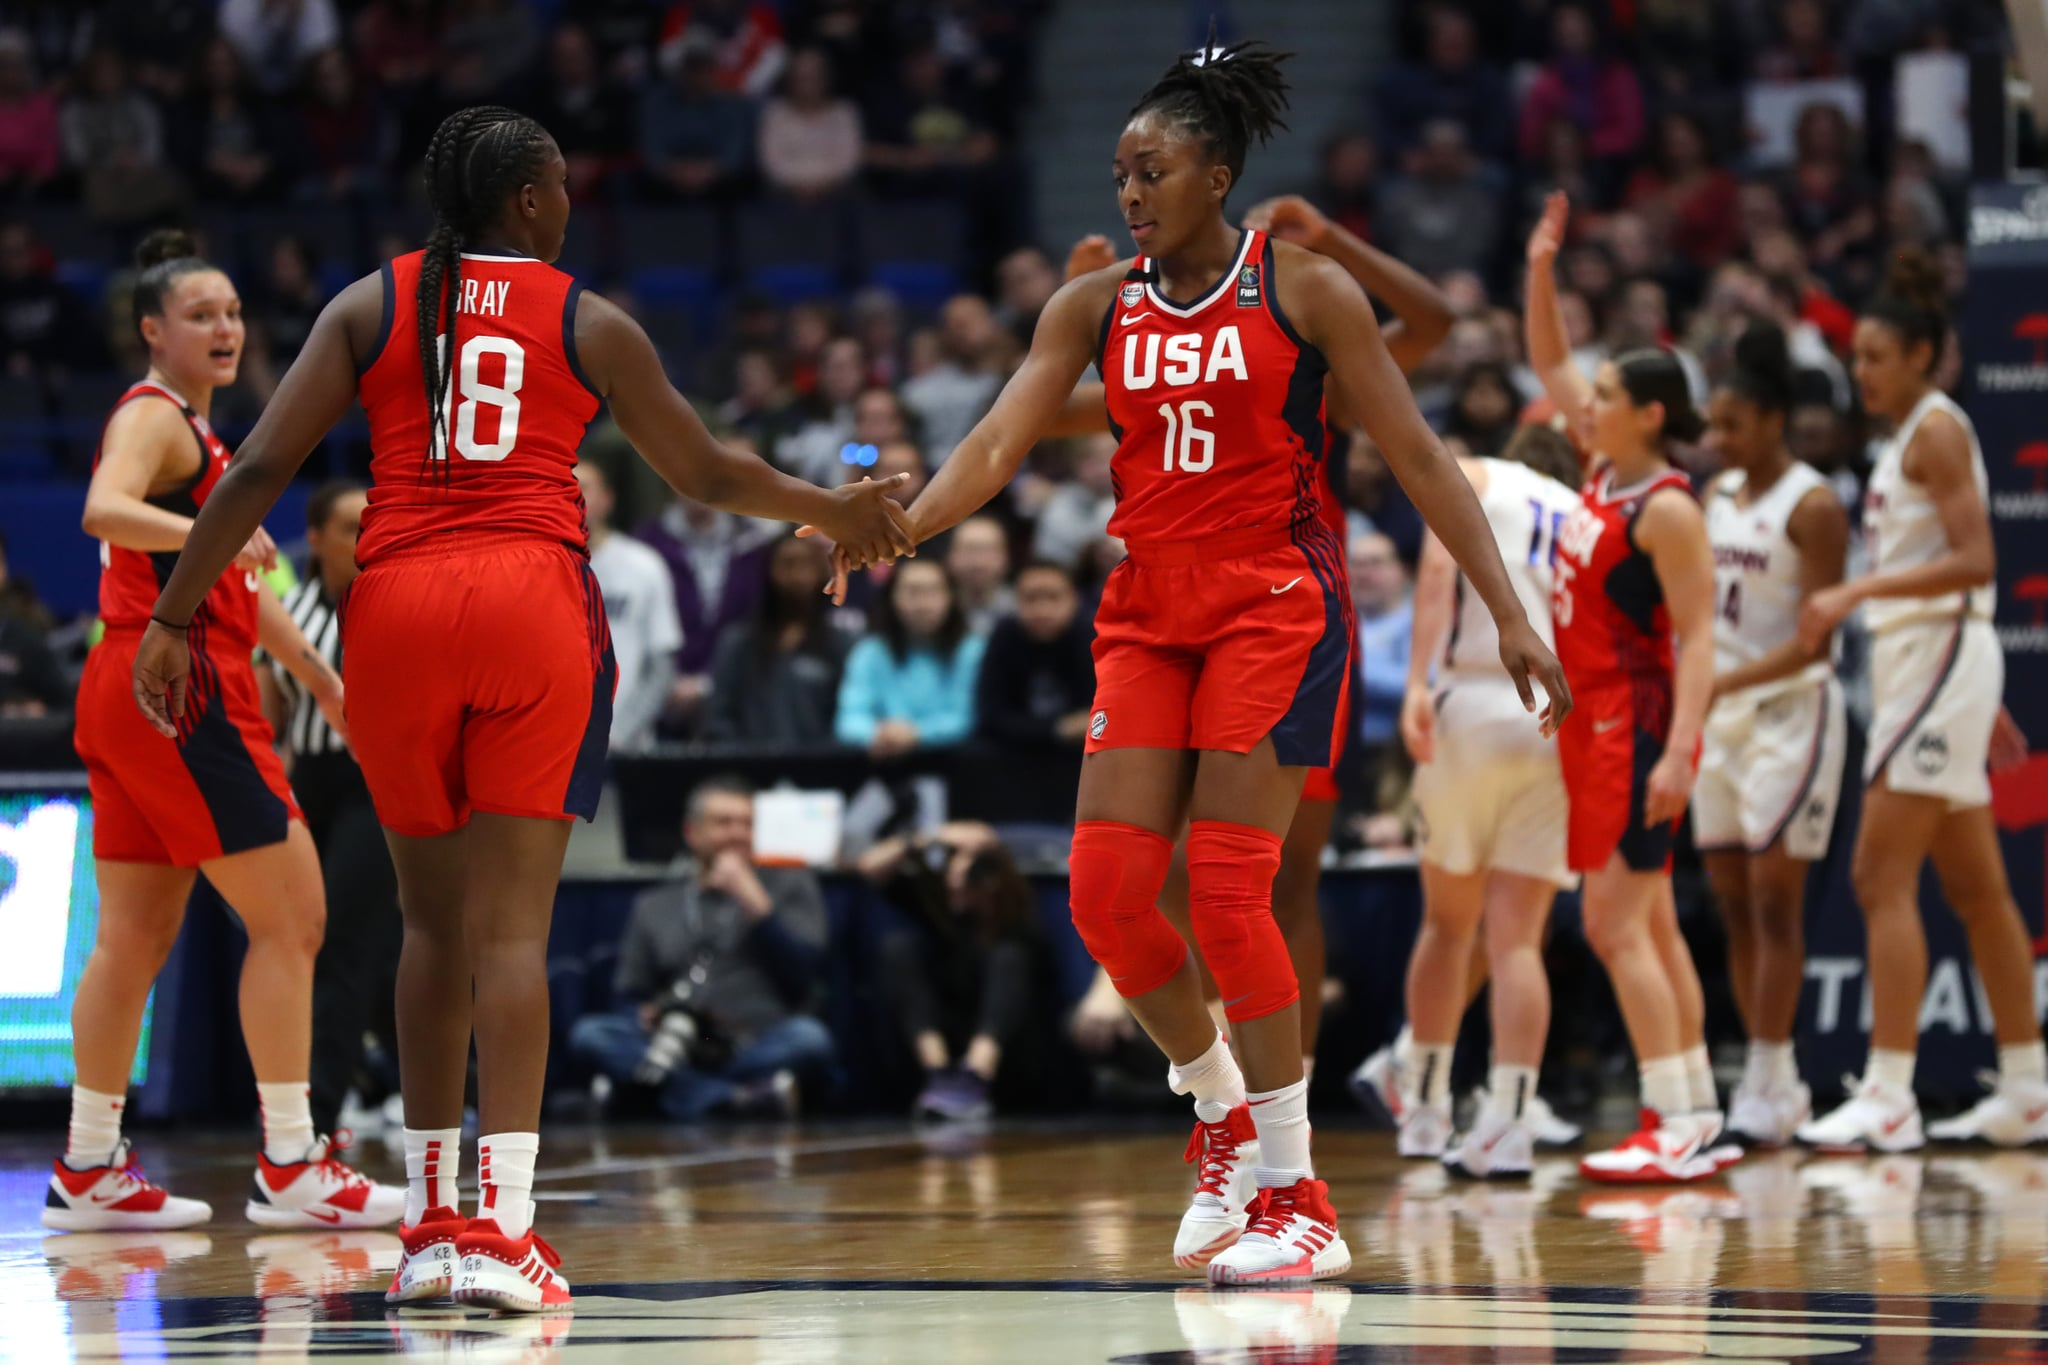 HARTFORD, CONNECTICUT - JANUARY 27: Nneka Ogwumike #16 and Chelsea Gray #18 of the United States celebrate during USA Women's National Team Winter Tour 2020 game between the United States and the UConn Huskies at The XL Centre on January 27, 2020 in Hartford, Connecticut.  (Photo by Maddie Meyer/Getty Images)